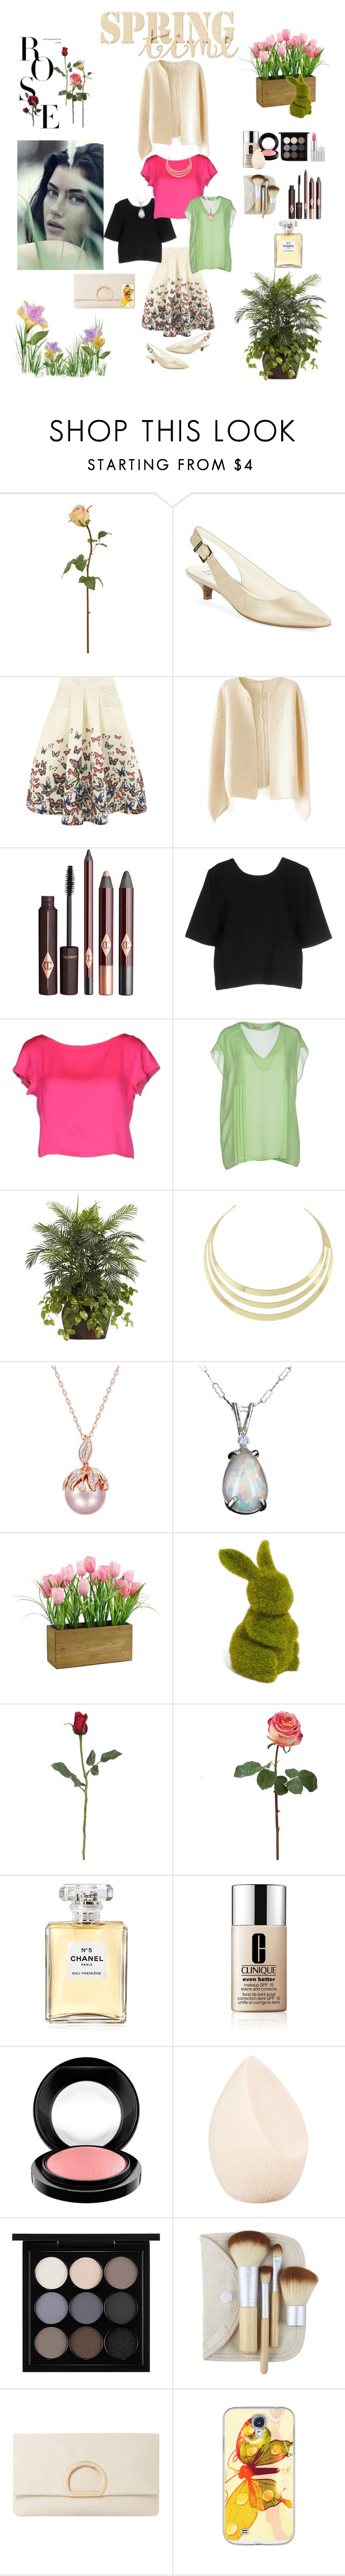 """Finally Spring!"" by nancyh4745 ❤ liked on Polyvore featuring Anne Klein, Jolie Moi, Suncoo, Milly, KI6? Who Are You?, Nearly Natural, Allstate Floral, Chanel, Clinique and MAC Cosmetics"